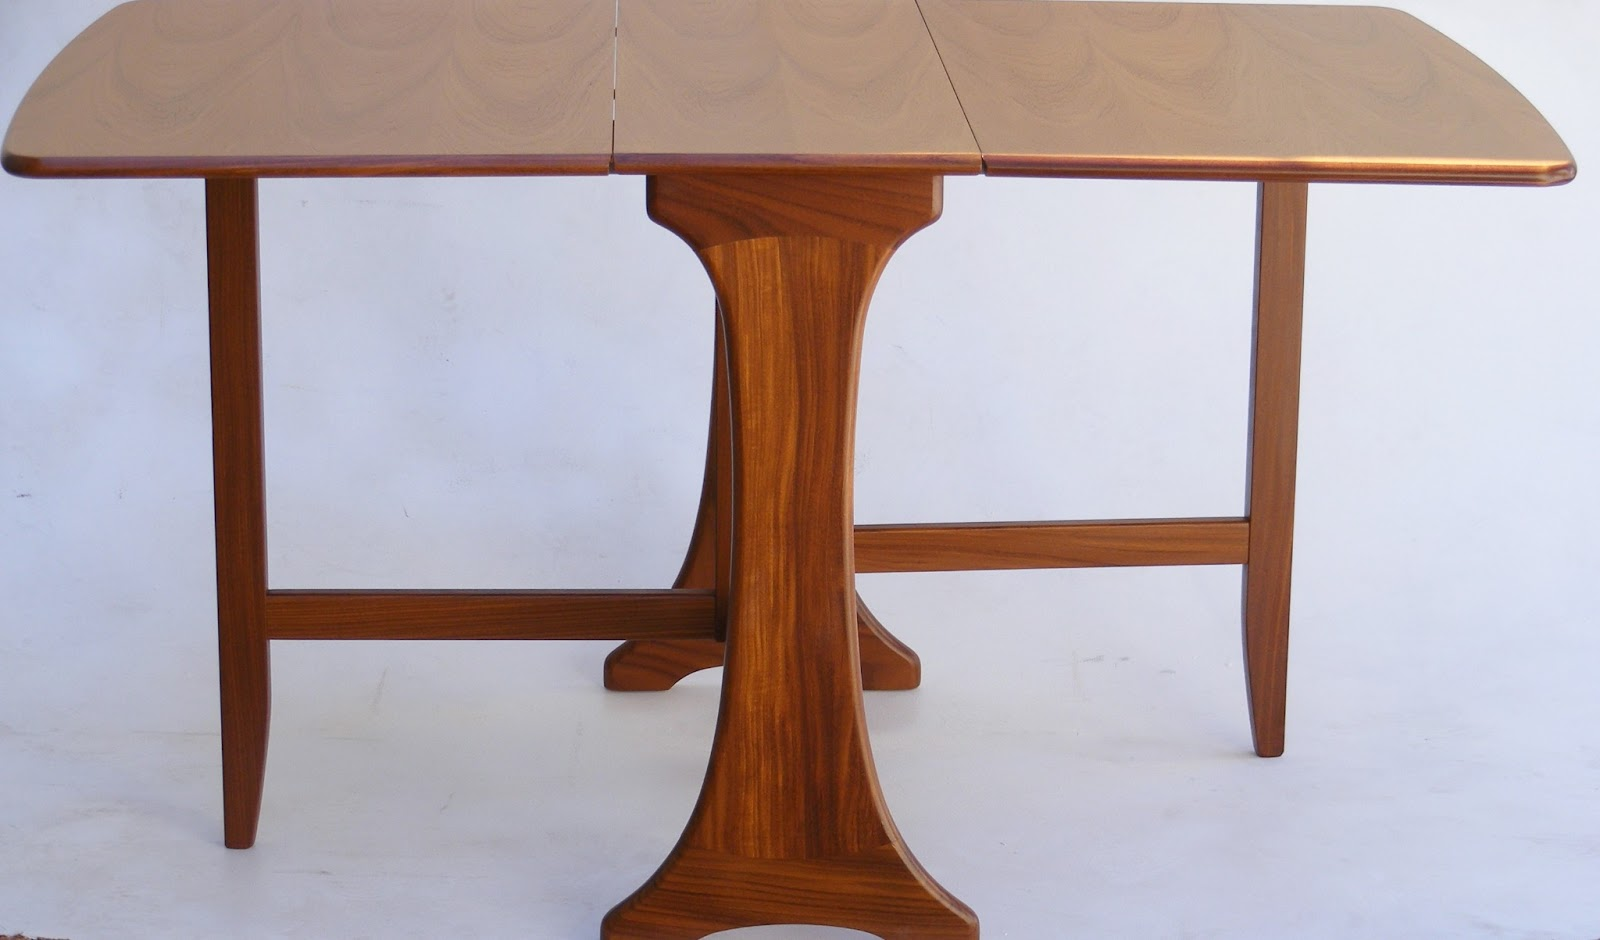 Vamp furniture this weeks new vintage furniture stock at for G plan dining room unit